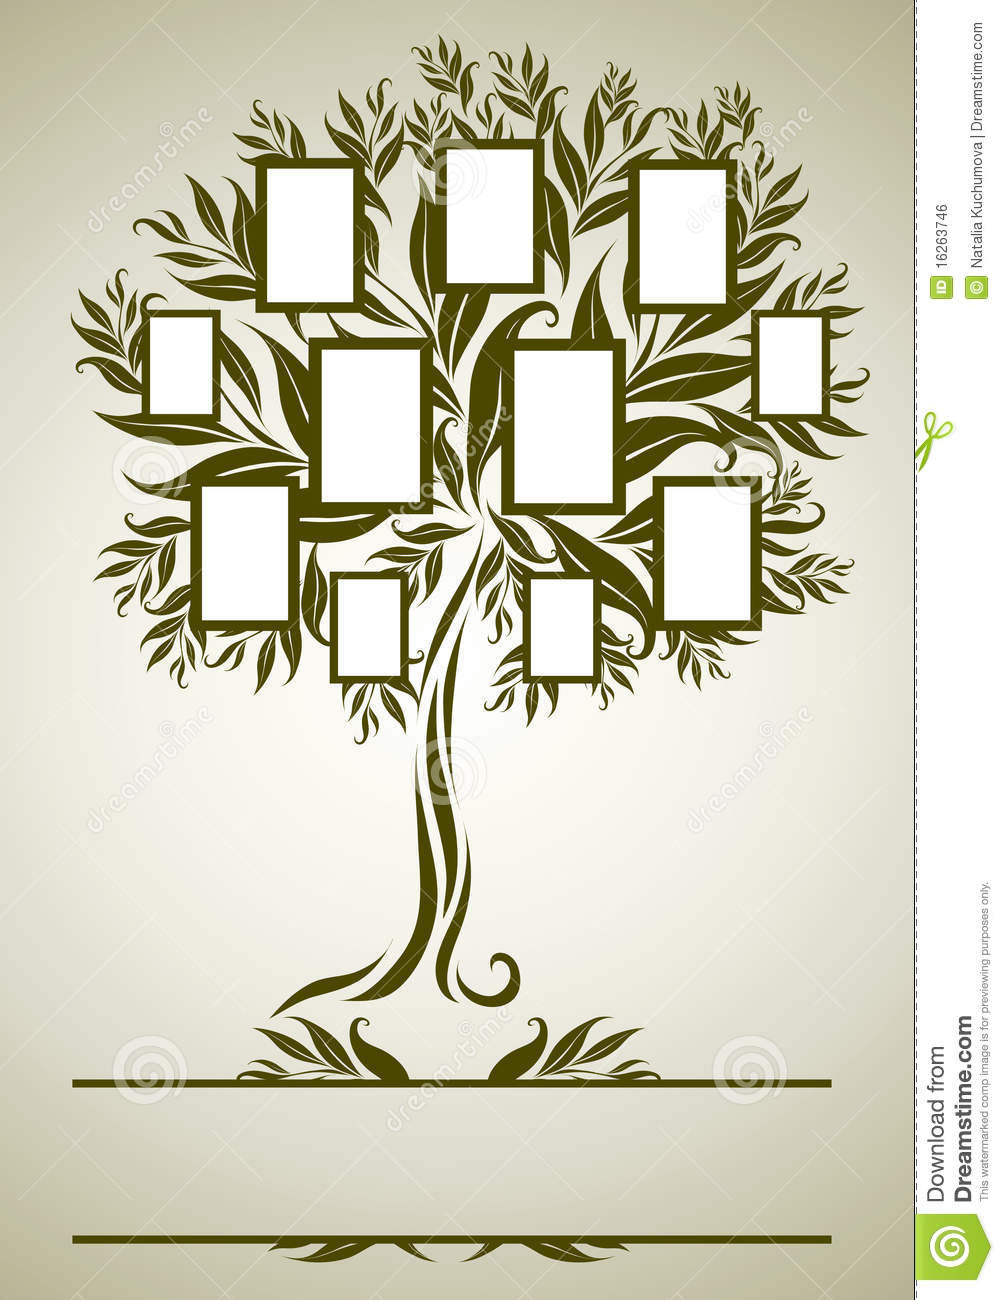 Vector Family Tree Design With Frames Royalty Free Stock Image ...